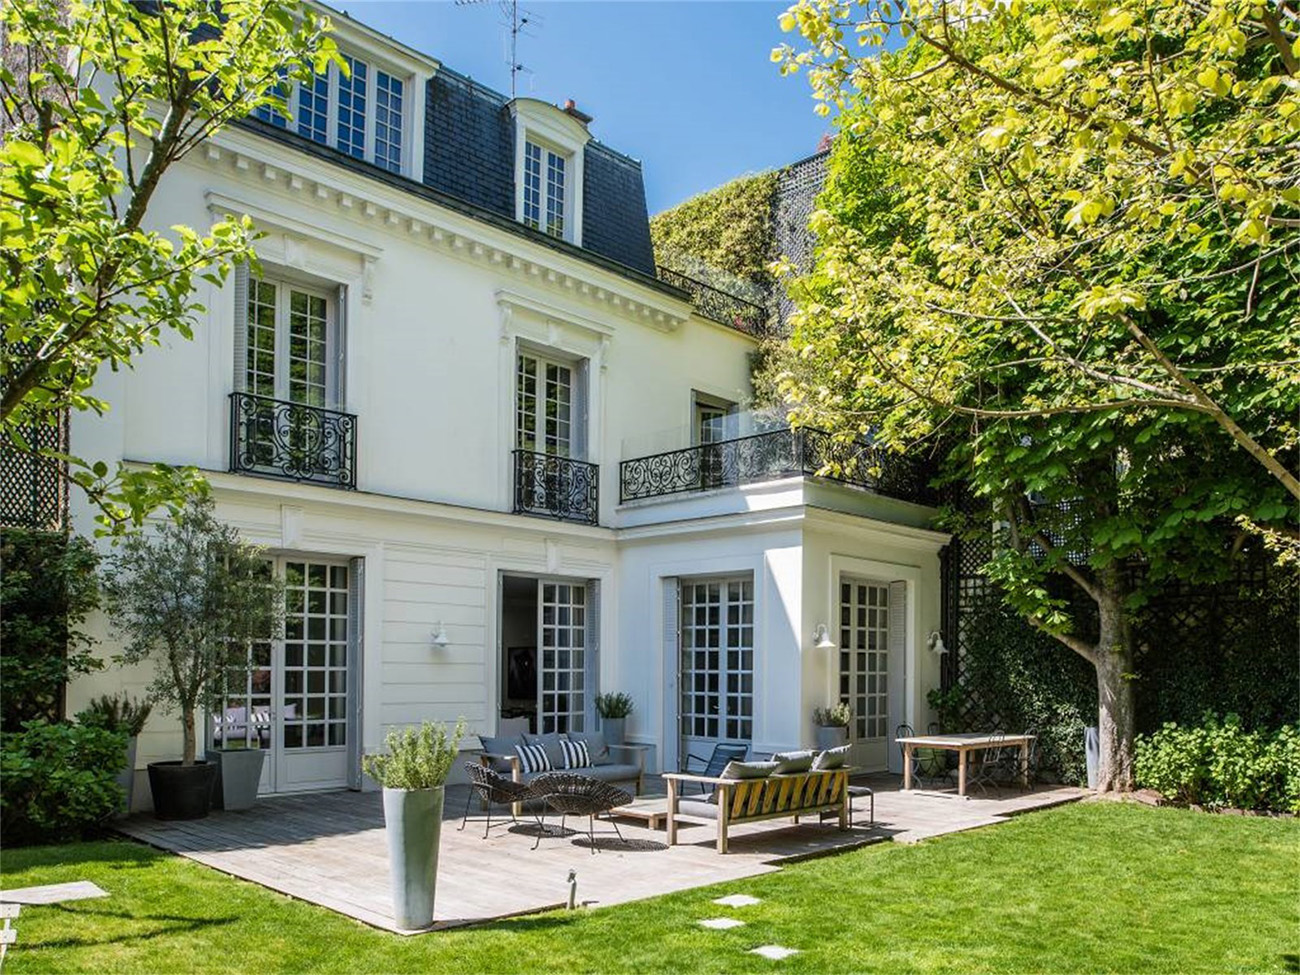 Home in Auteuil, Paris - Exterior